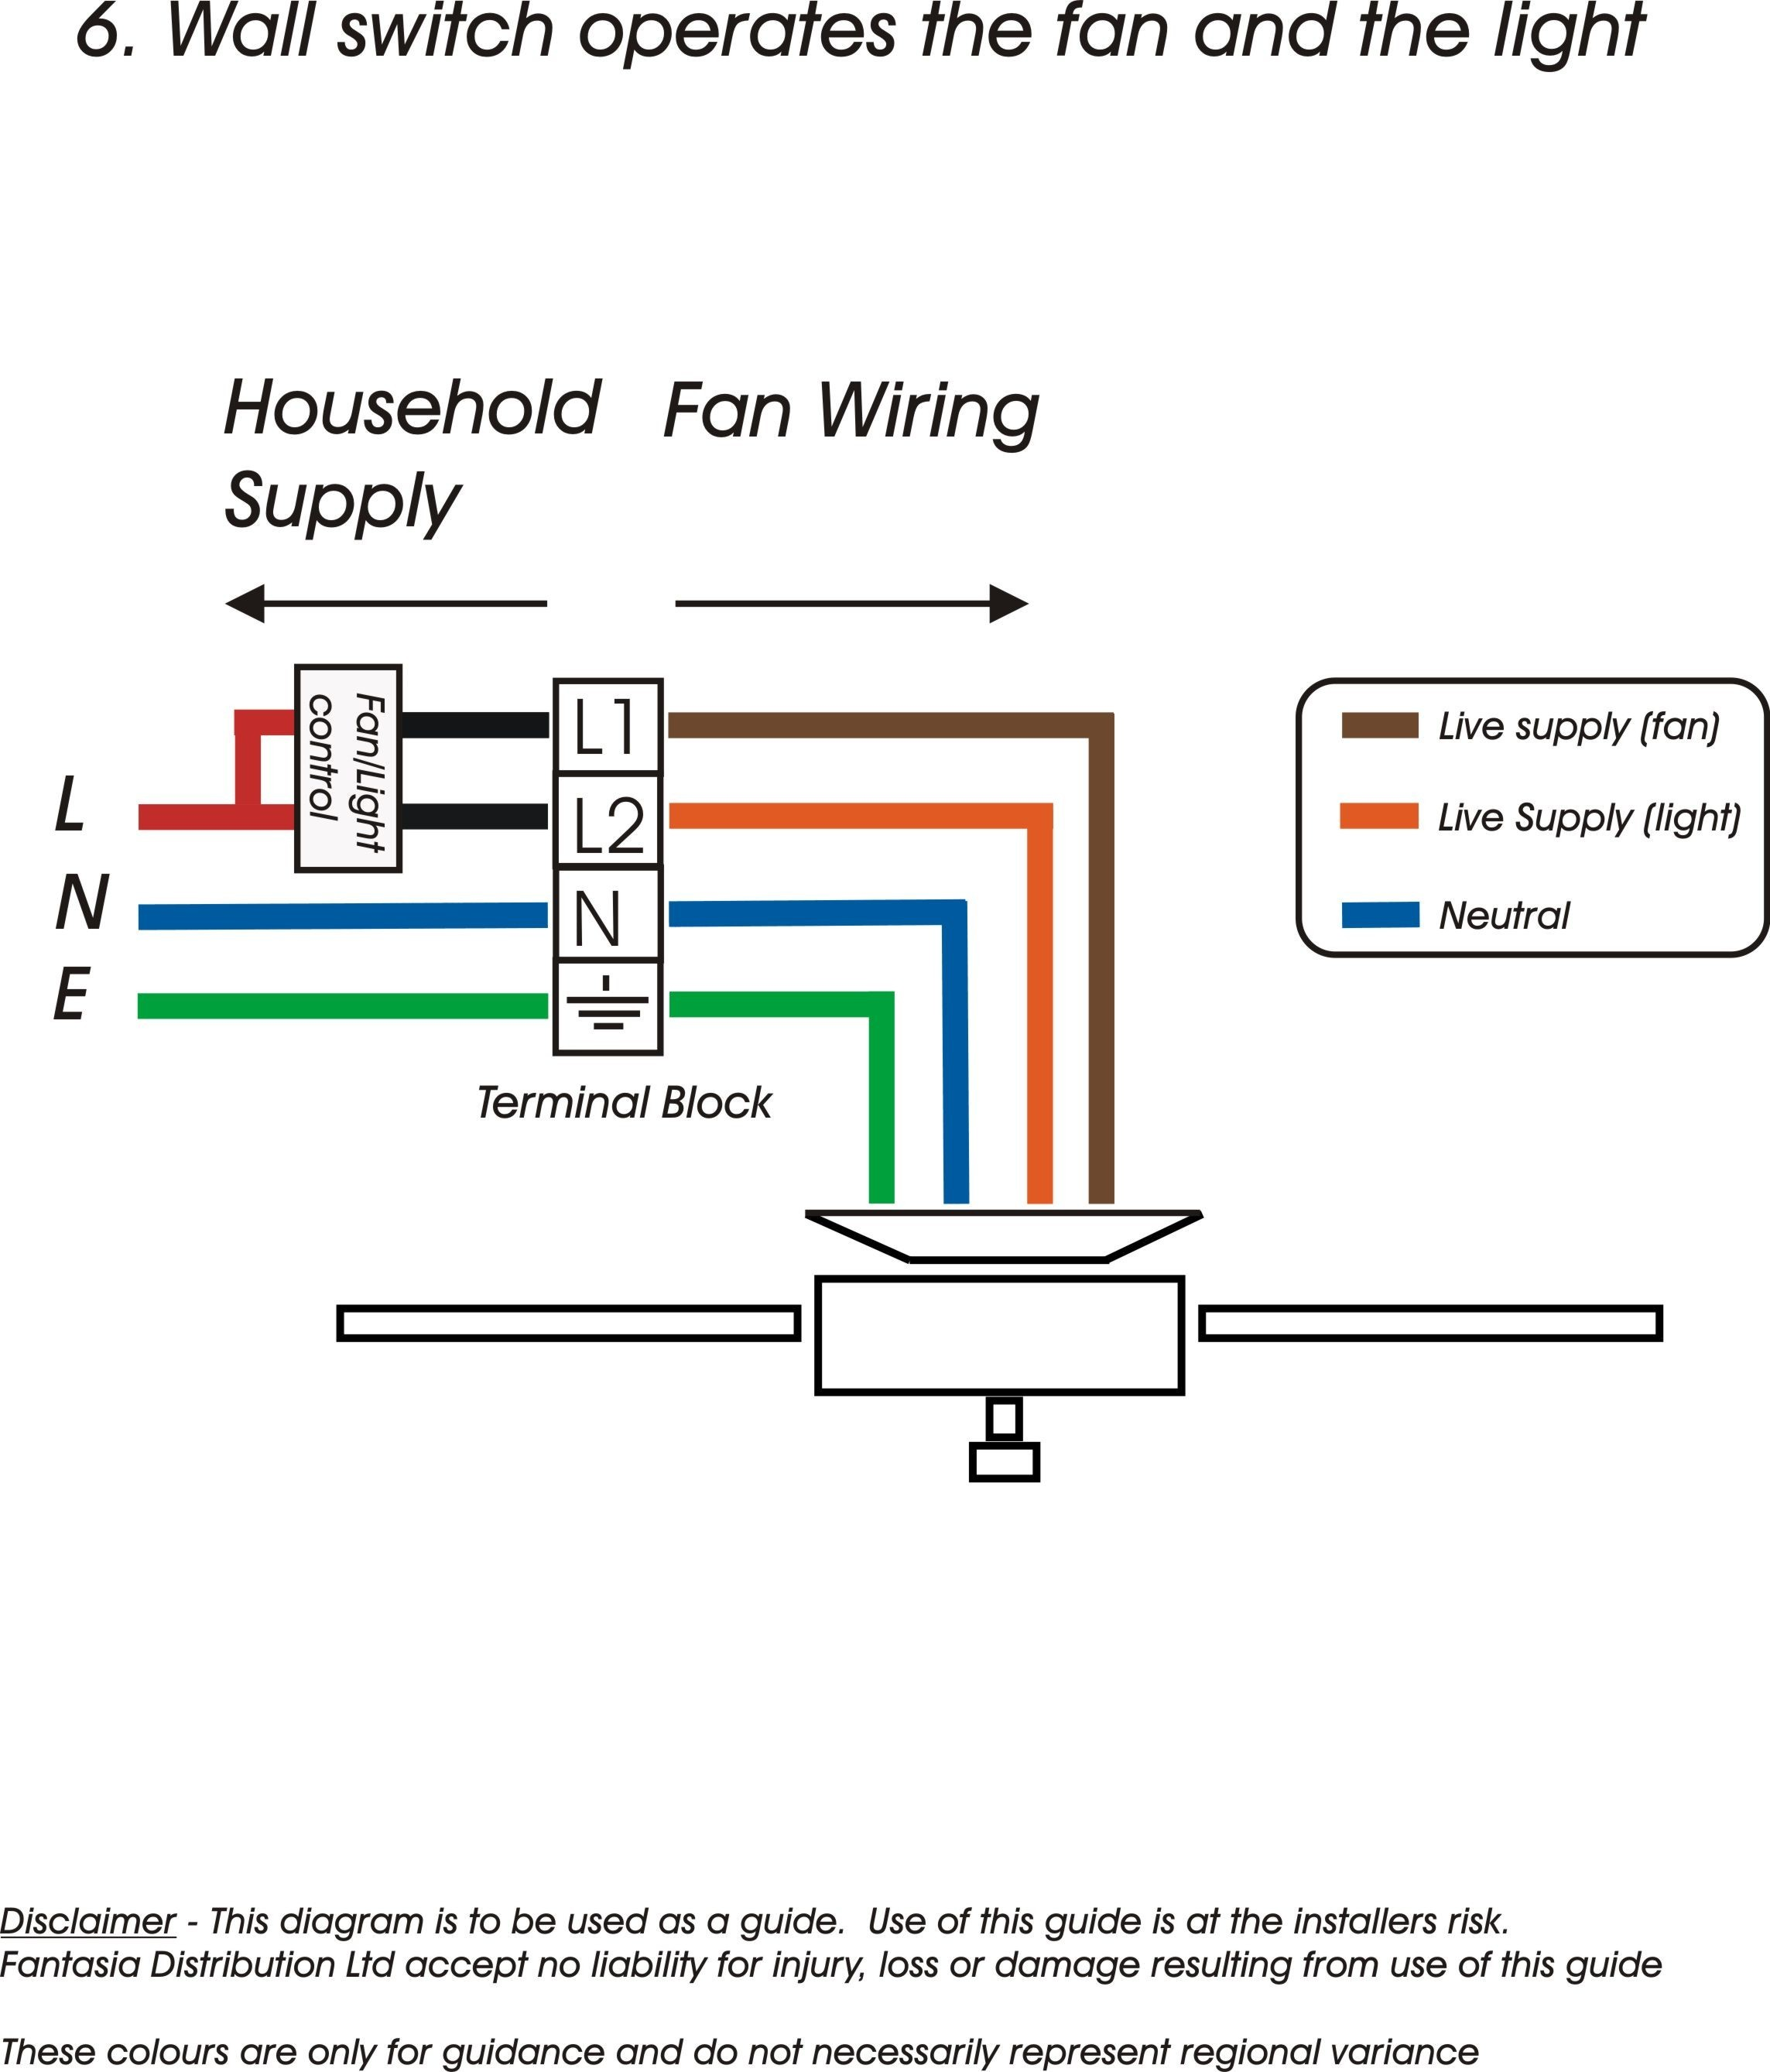 How to Wire A Light with Two Switches Switch Diagram Ceiling Fan Wiring Diagram Australia Fresh without Light E280a2 Of How to Wire A Light with Two Switches Switch Diagram